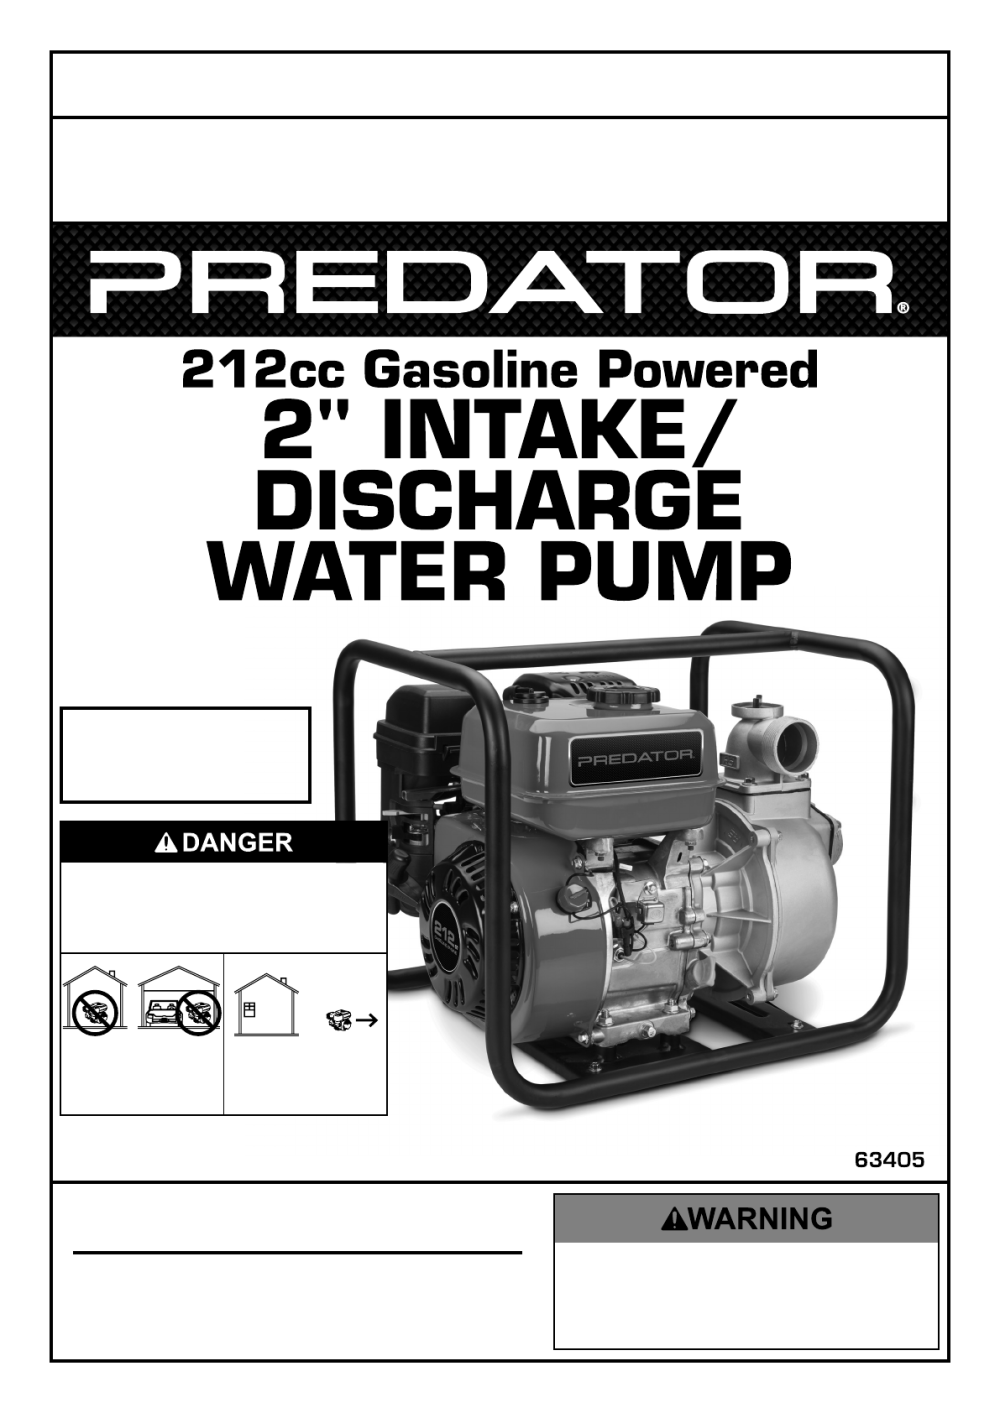 medium resolution of manual for the 63405 2 in intake discharge 212cc gasoline engine water pump 158 gpm